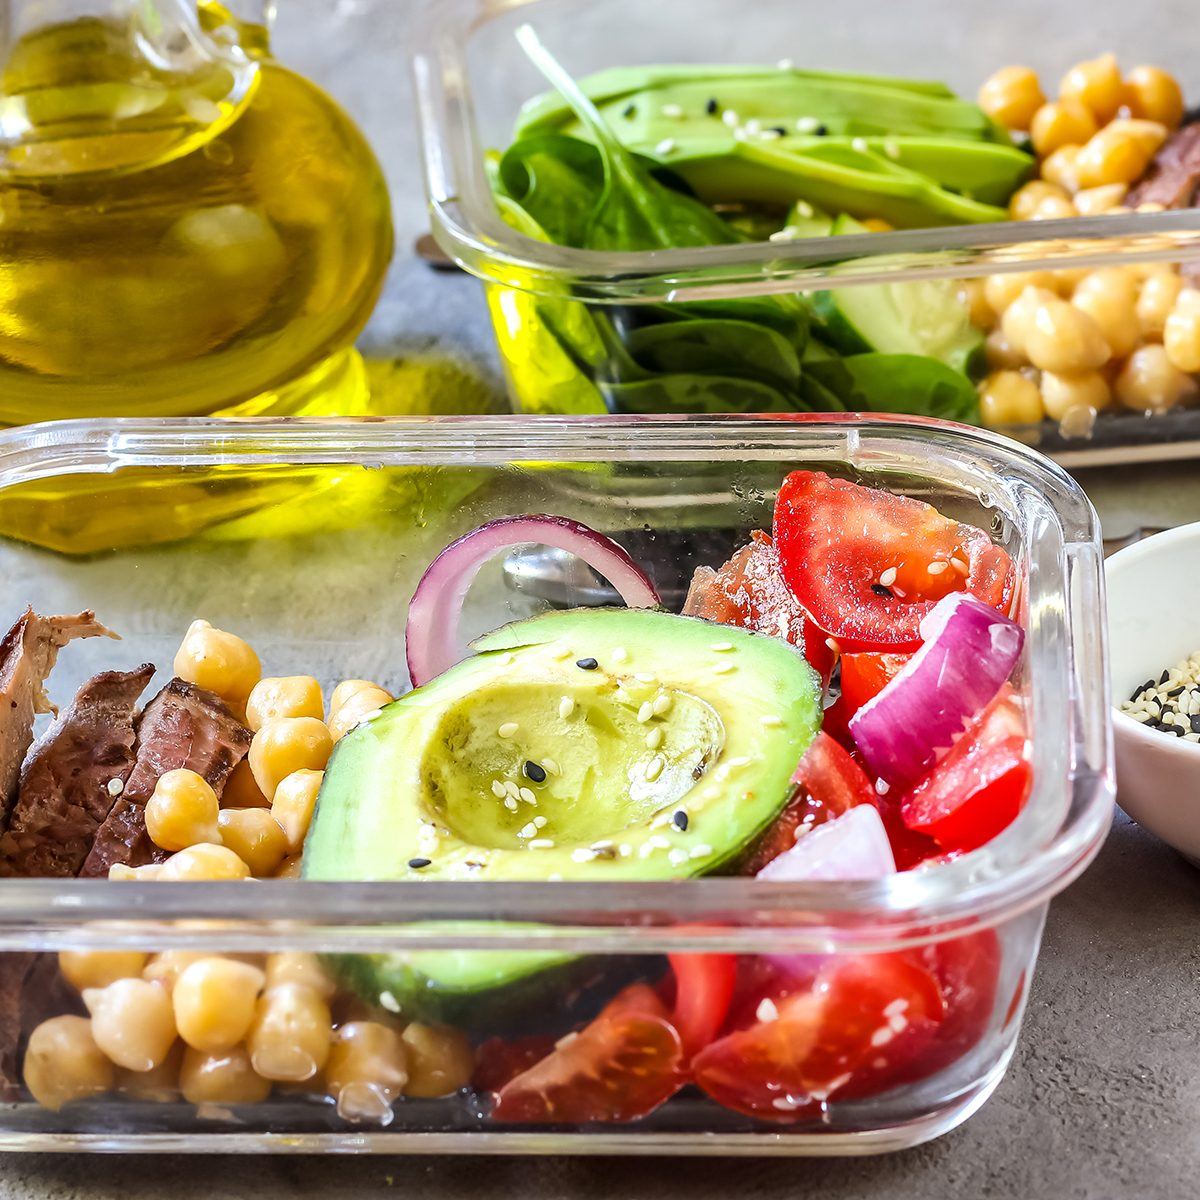 Healthy meal prep containers with chickpeas, goose meat , tomatoes, avocado, lemon and spinach. Top view; Shutterstock ID 1081277720